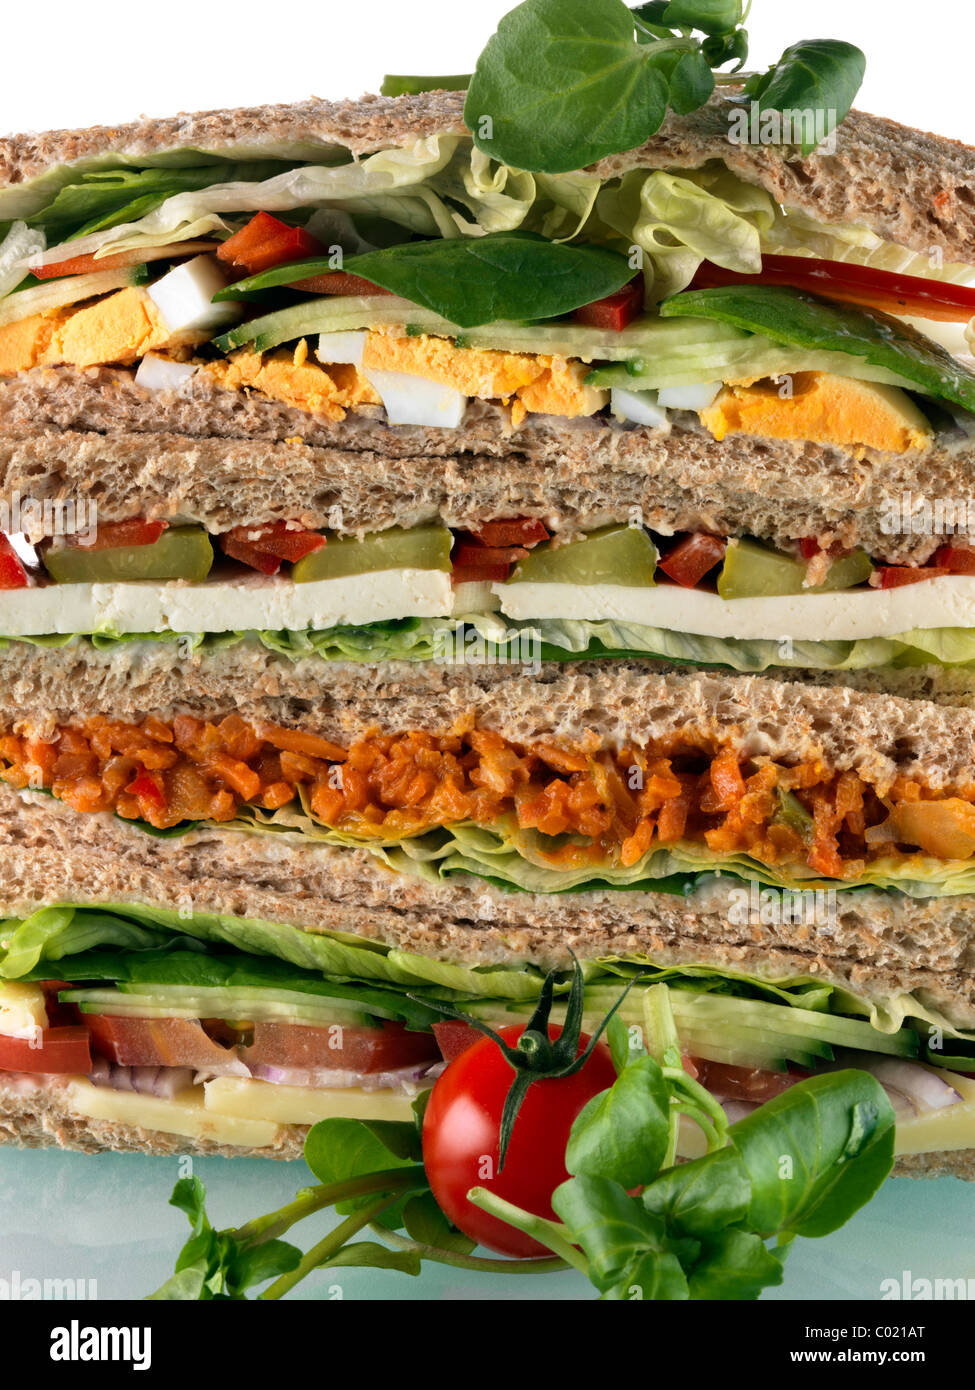 A pile of vegetarian sandwiches - Stock Image